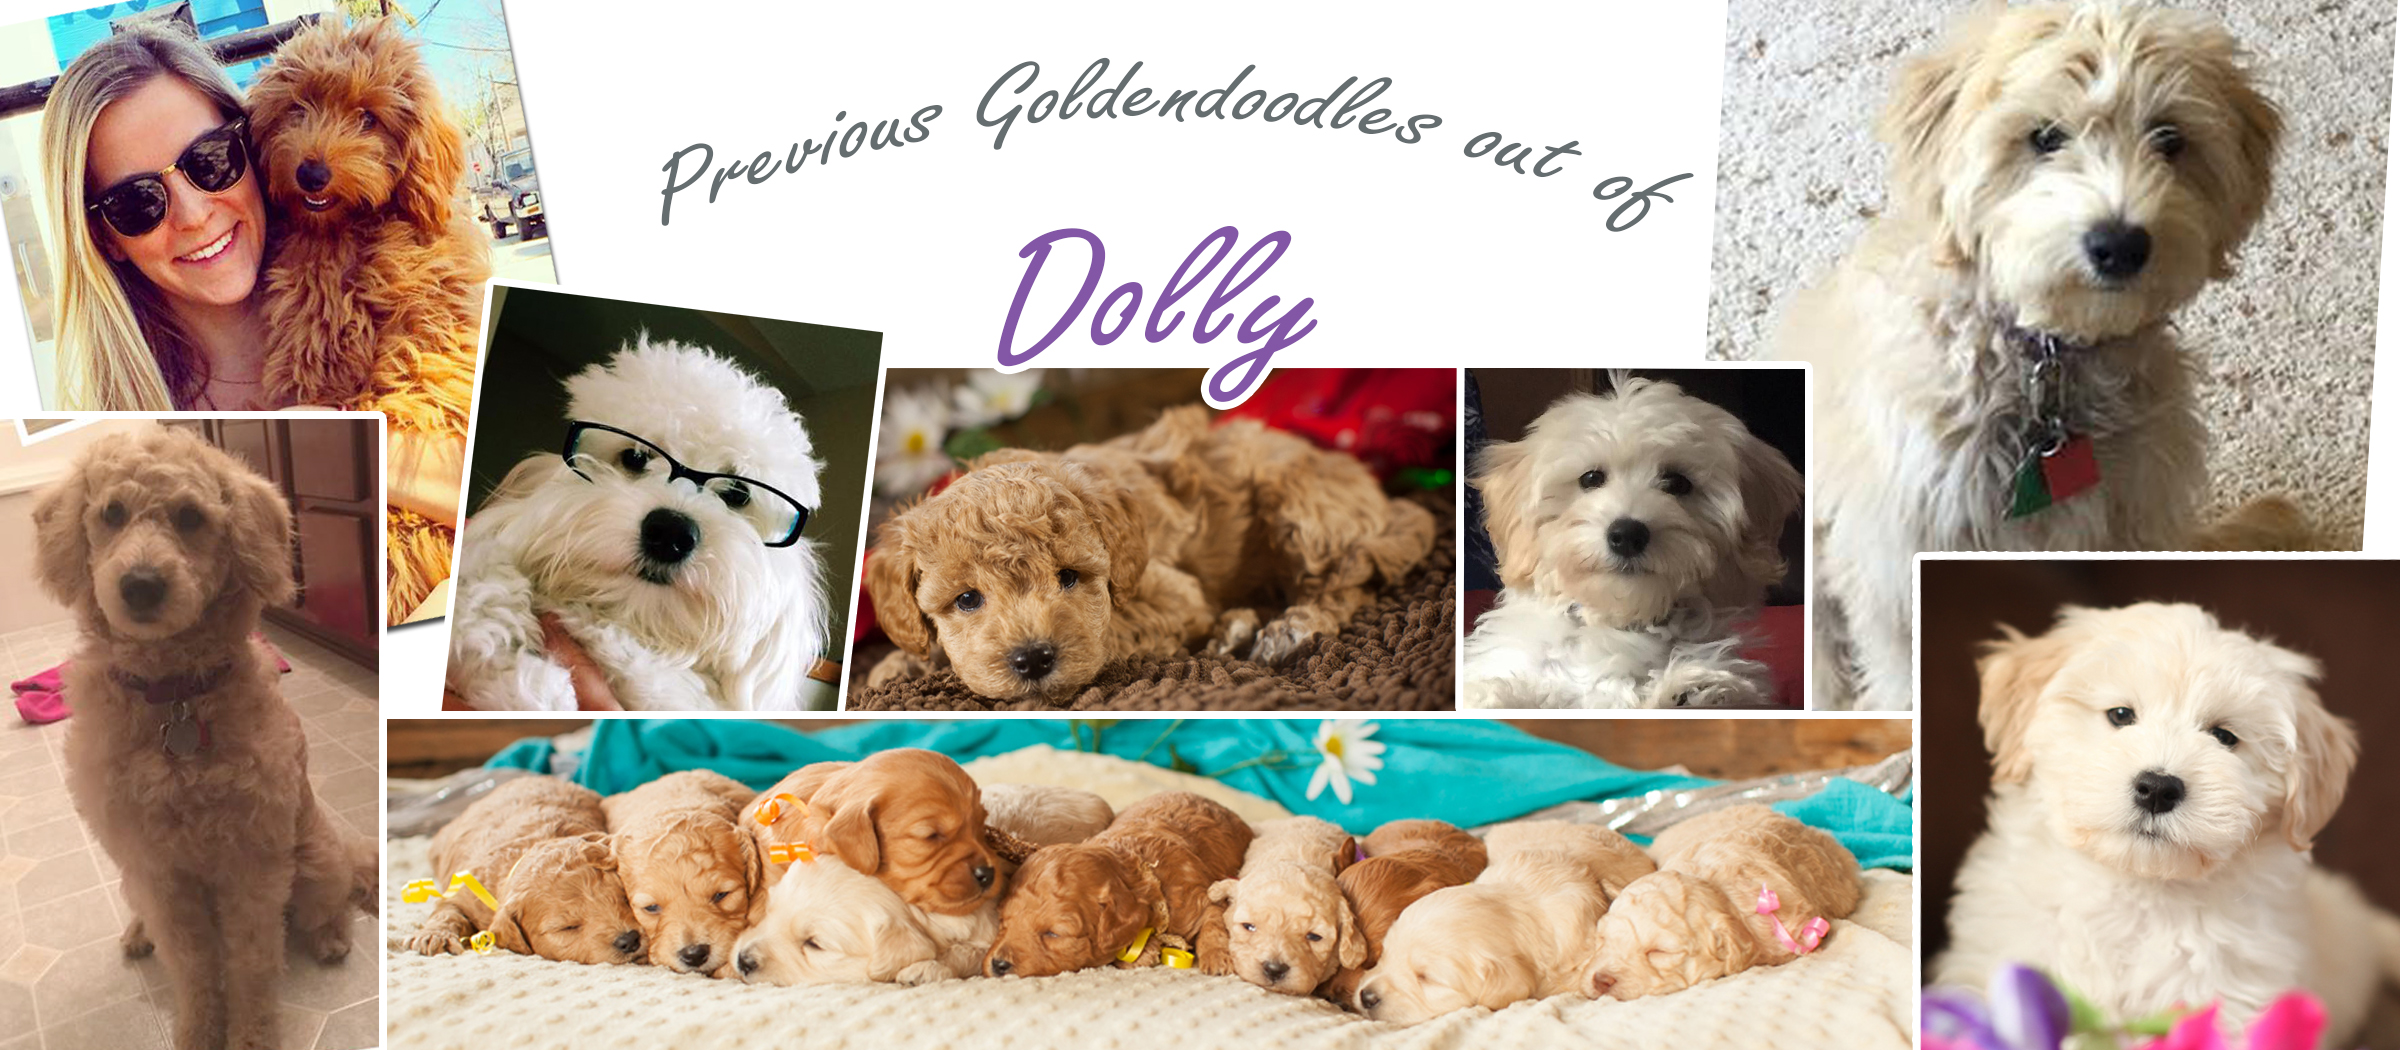 Dolly_Puppies-Recovered